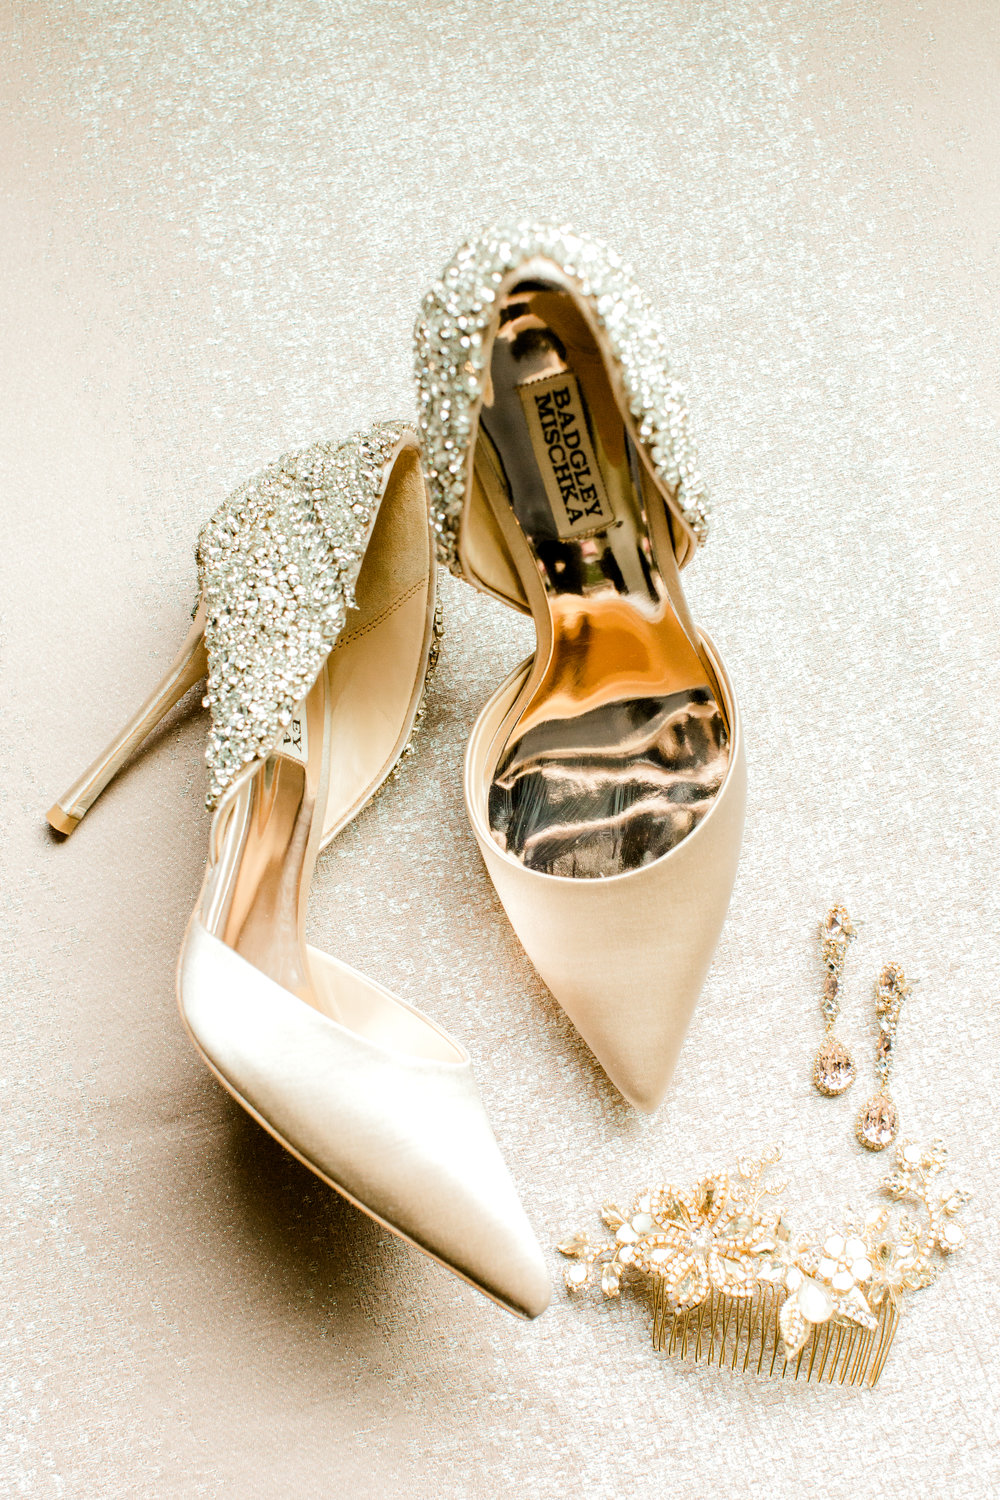 Bagdley Mischka wedding shoes | Stephen Grace Atelier in the Woodlands